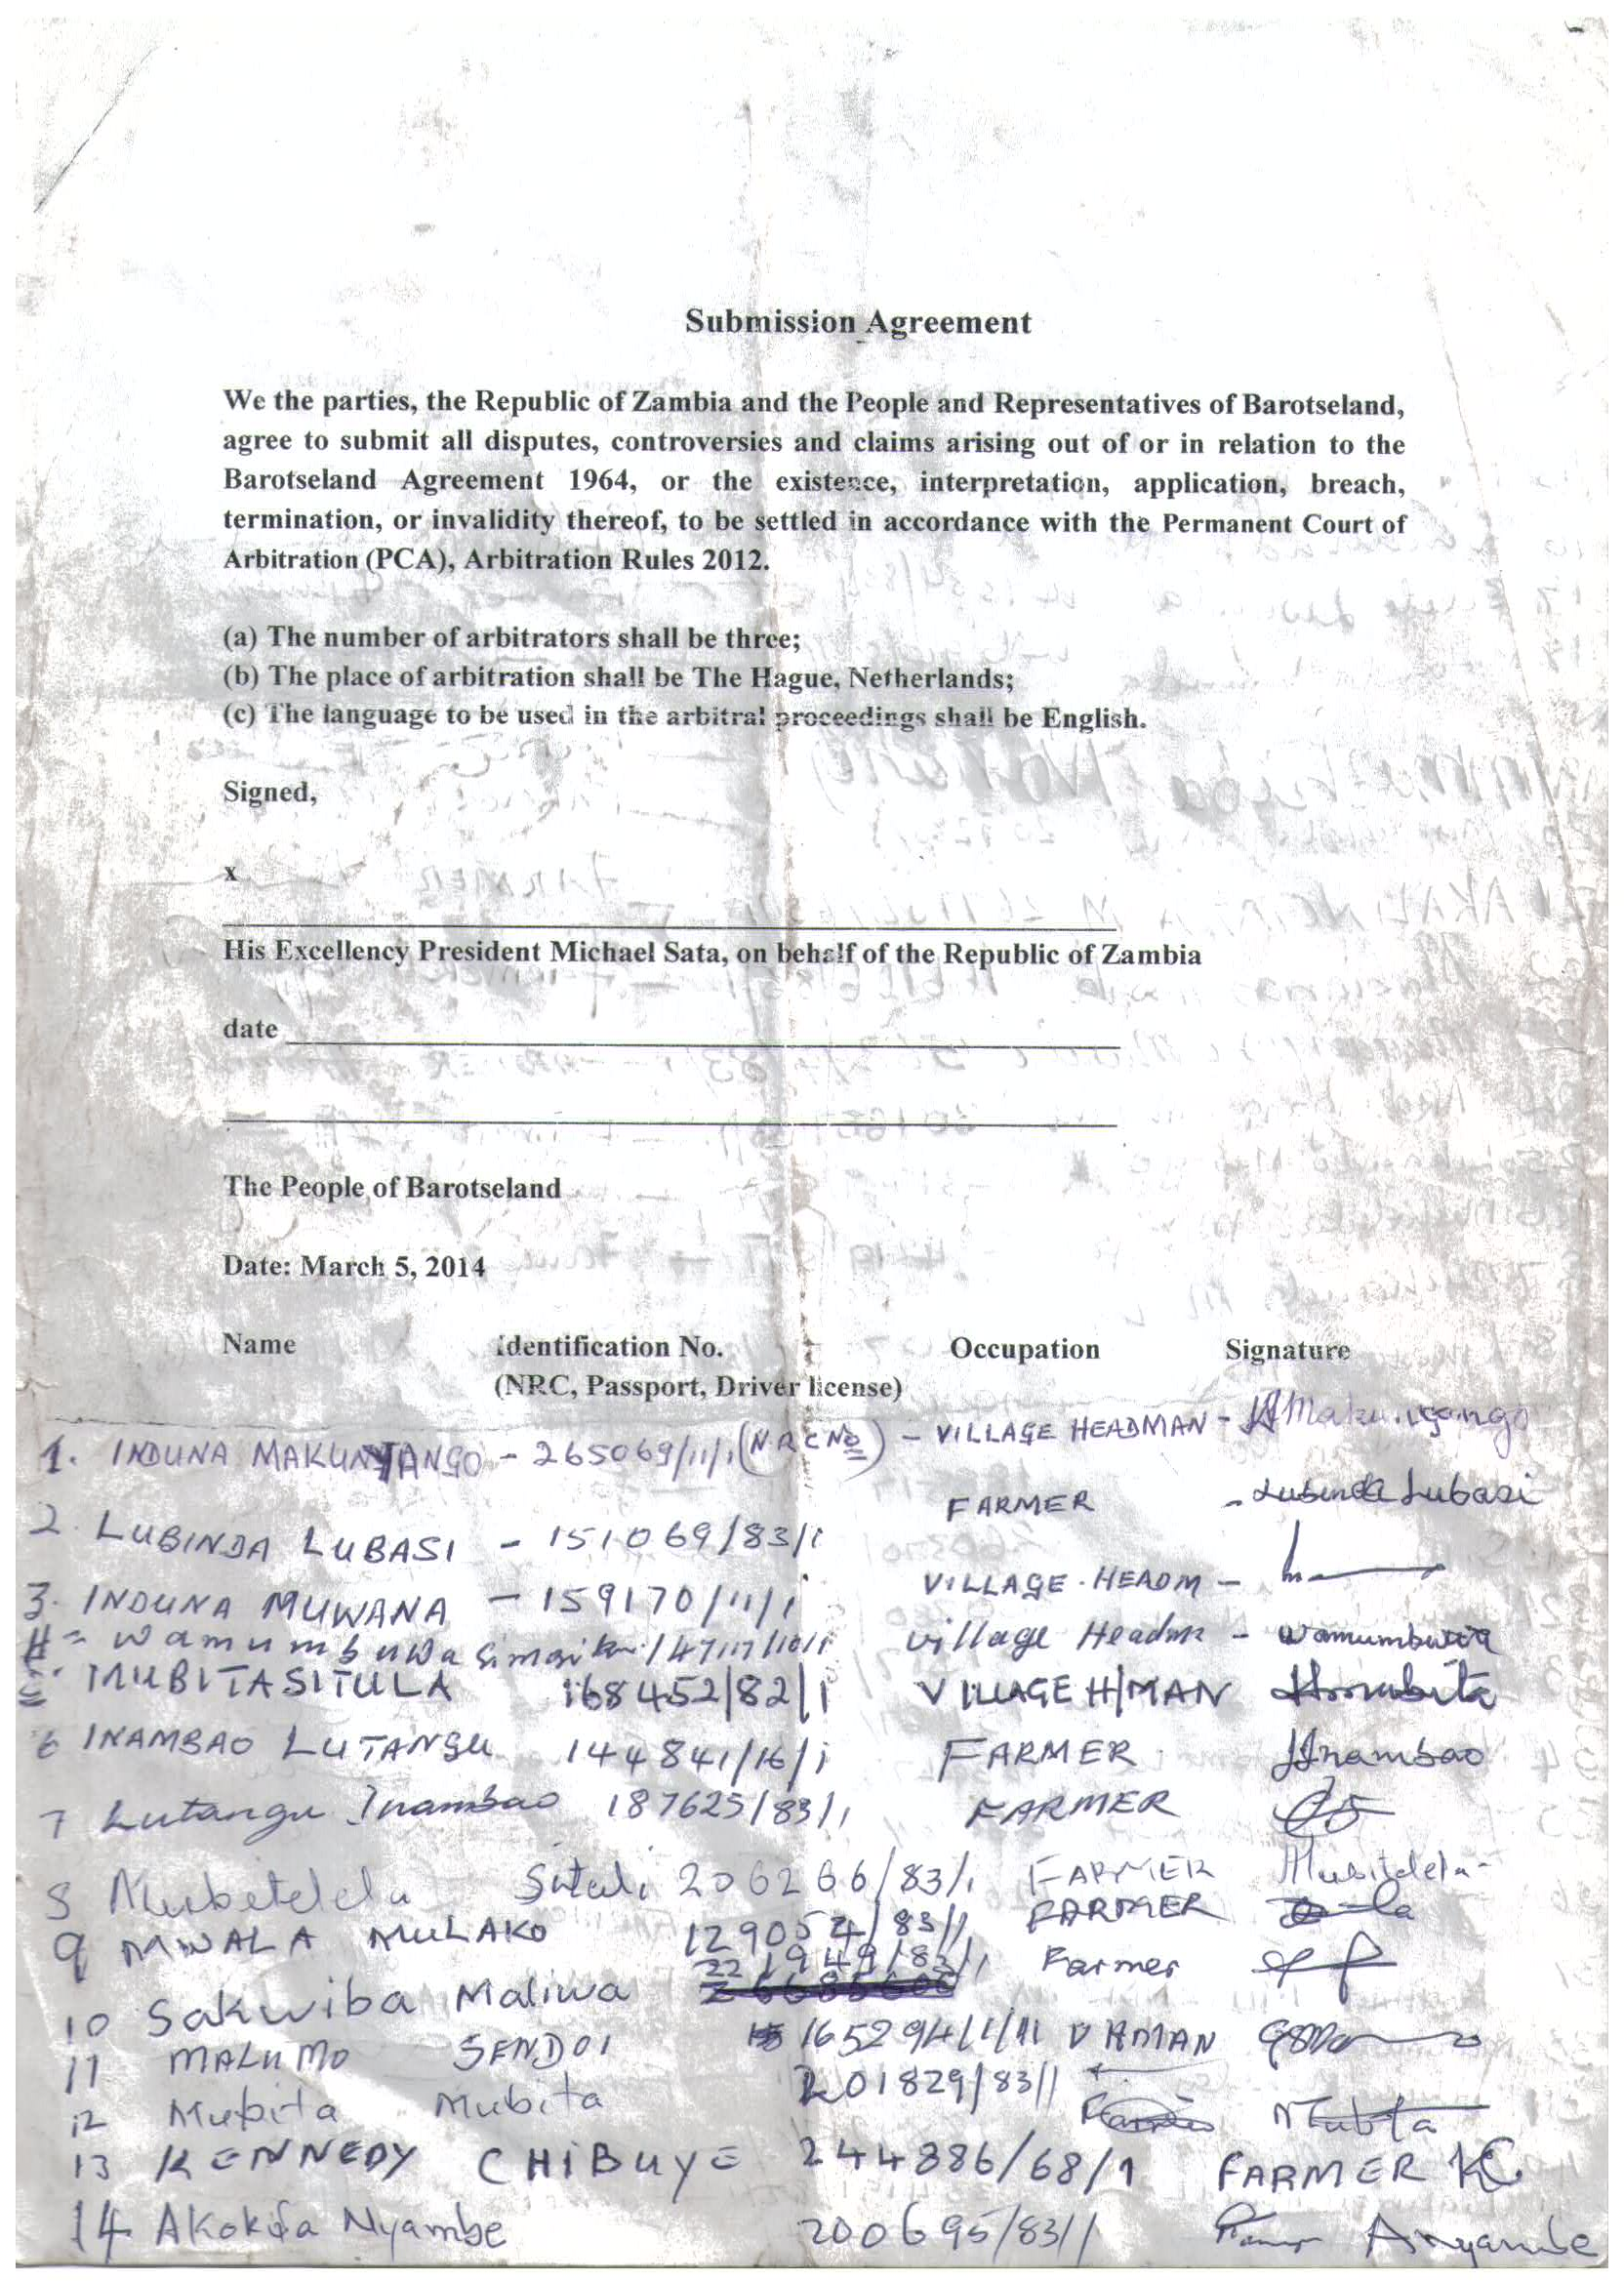 Submission agreement--signatures batch 12_Page_3